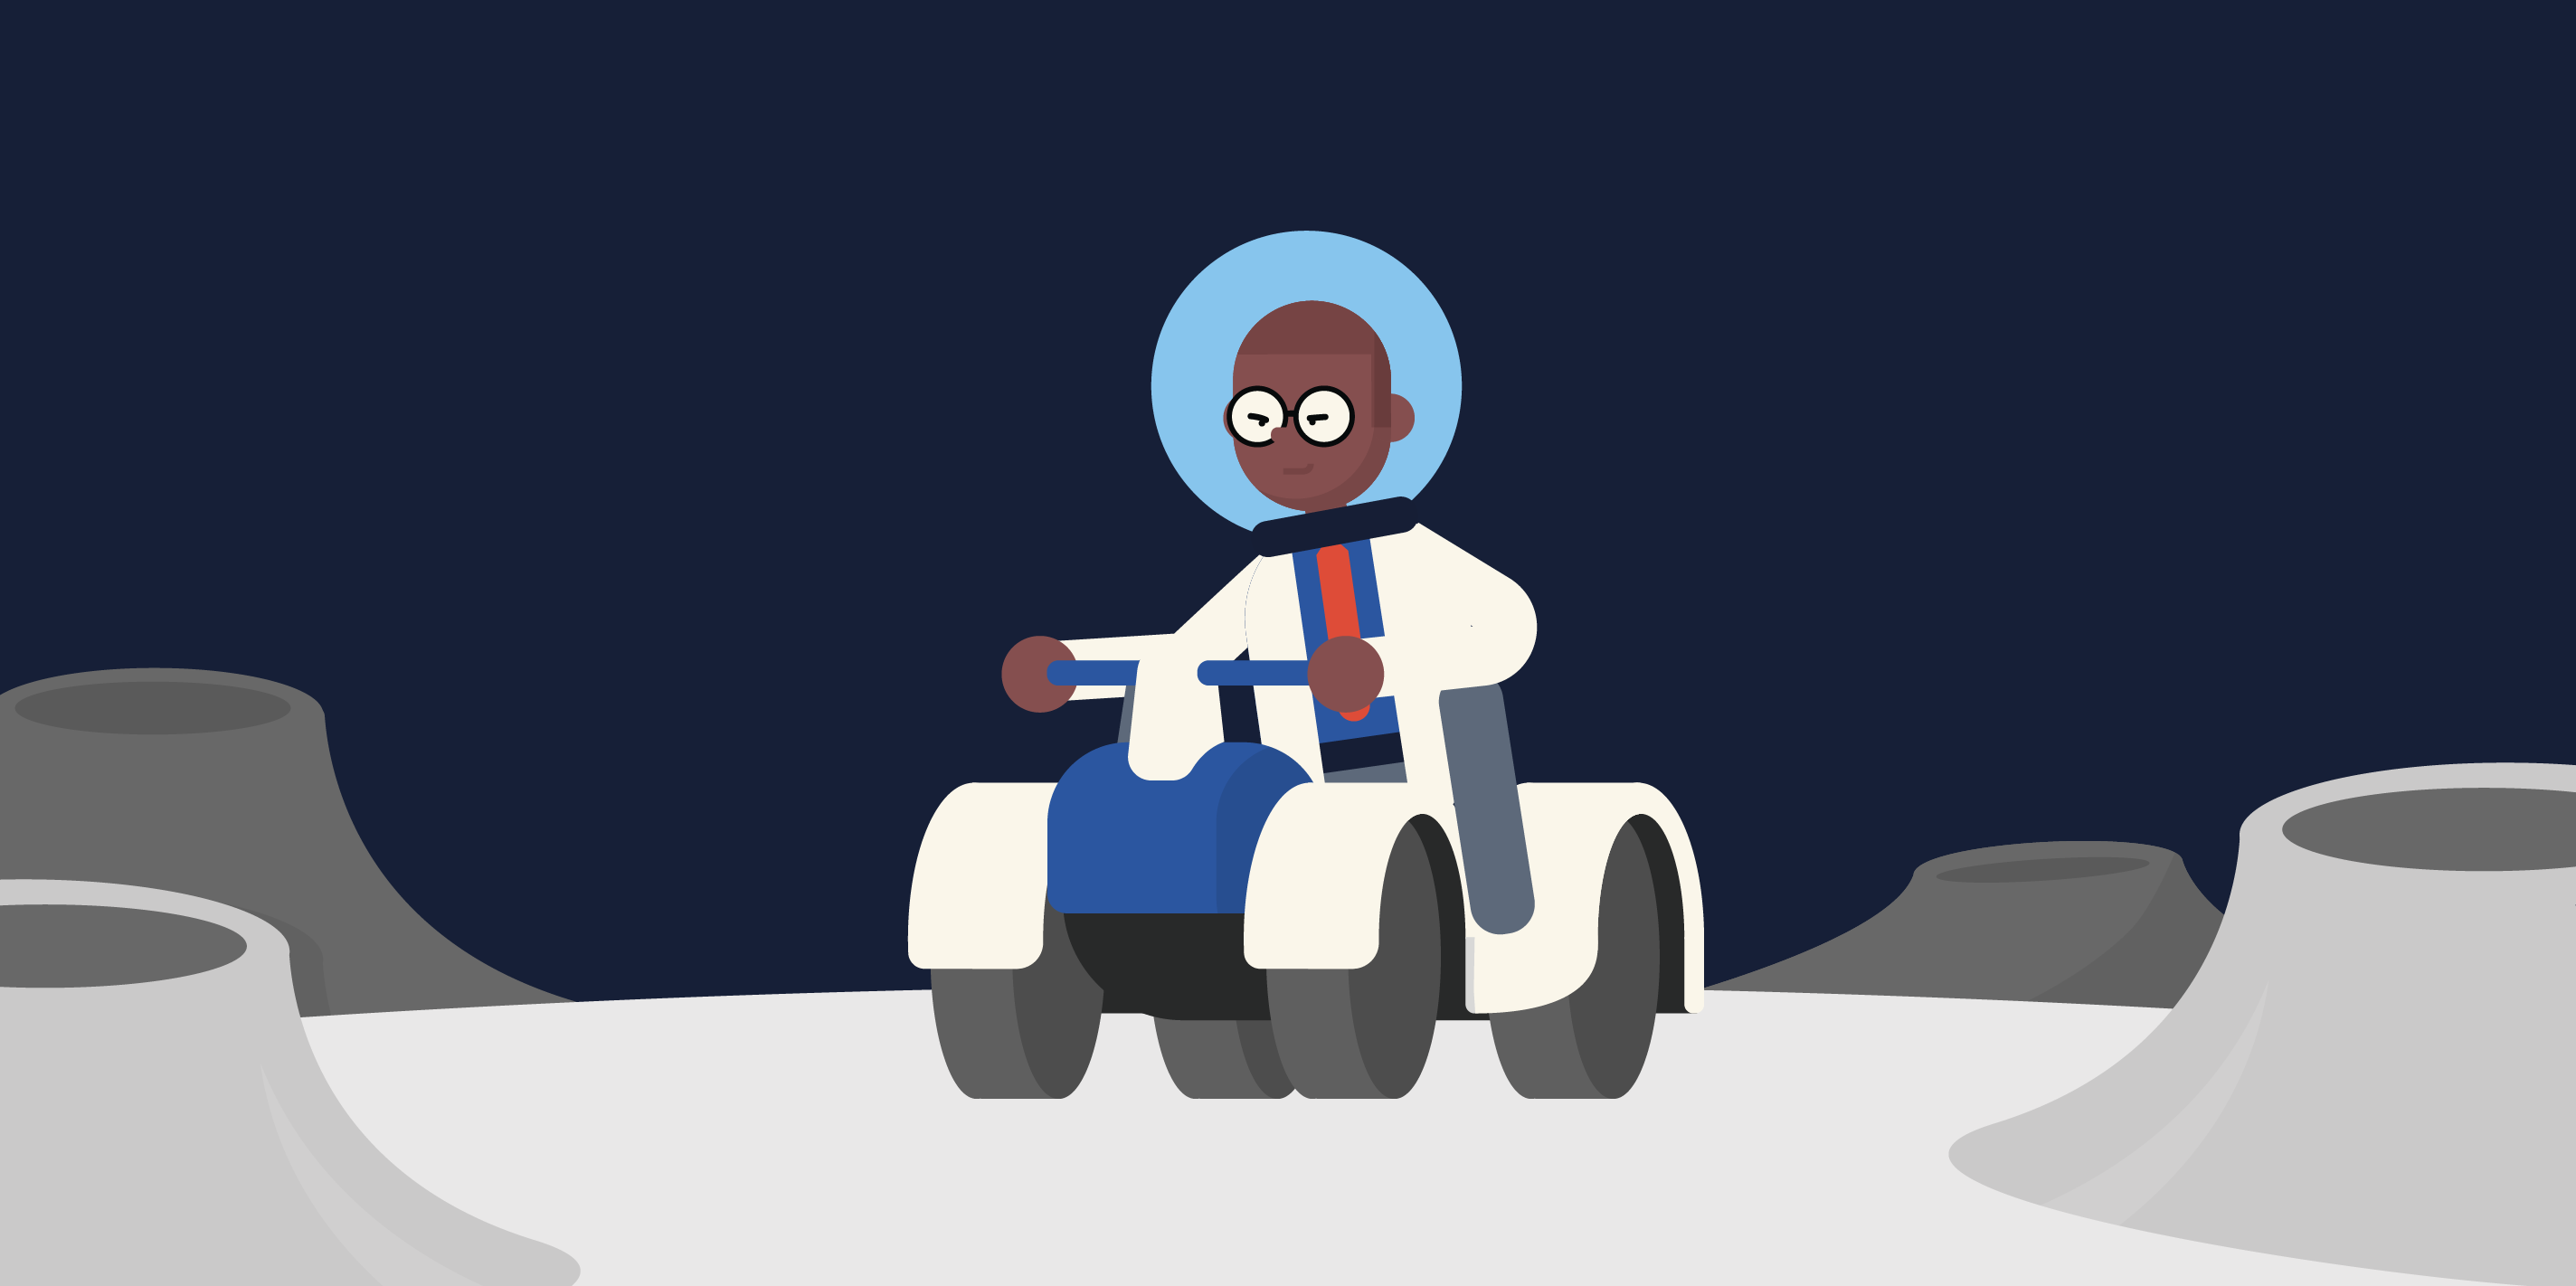 scientist on the moon in a quad bike